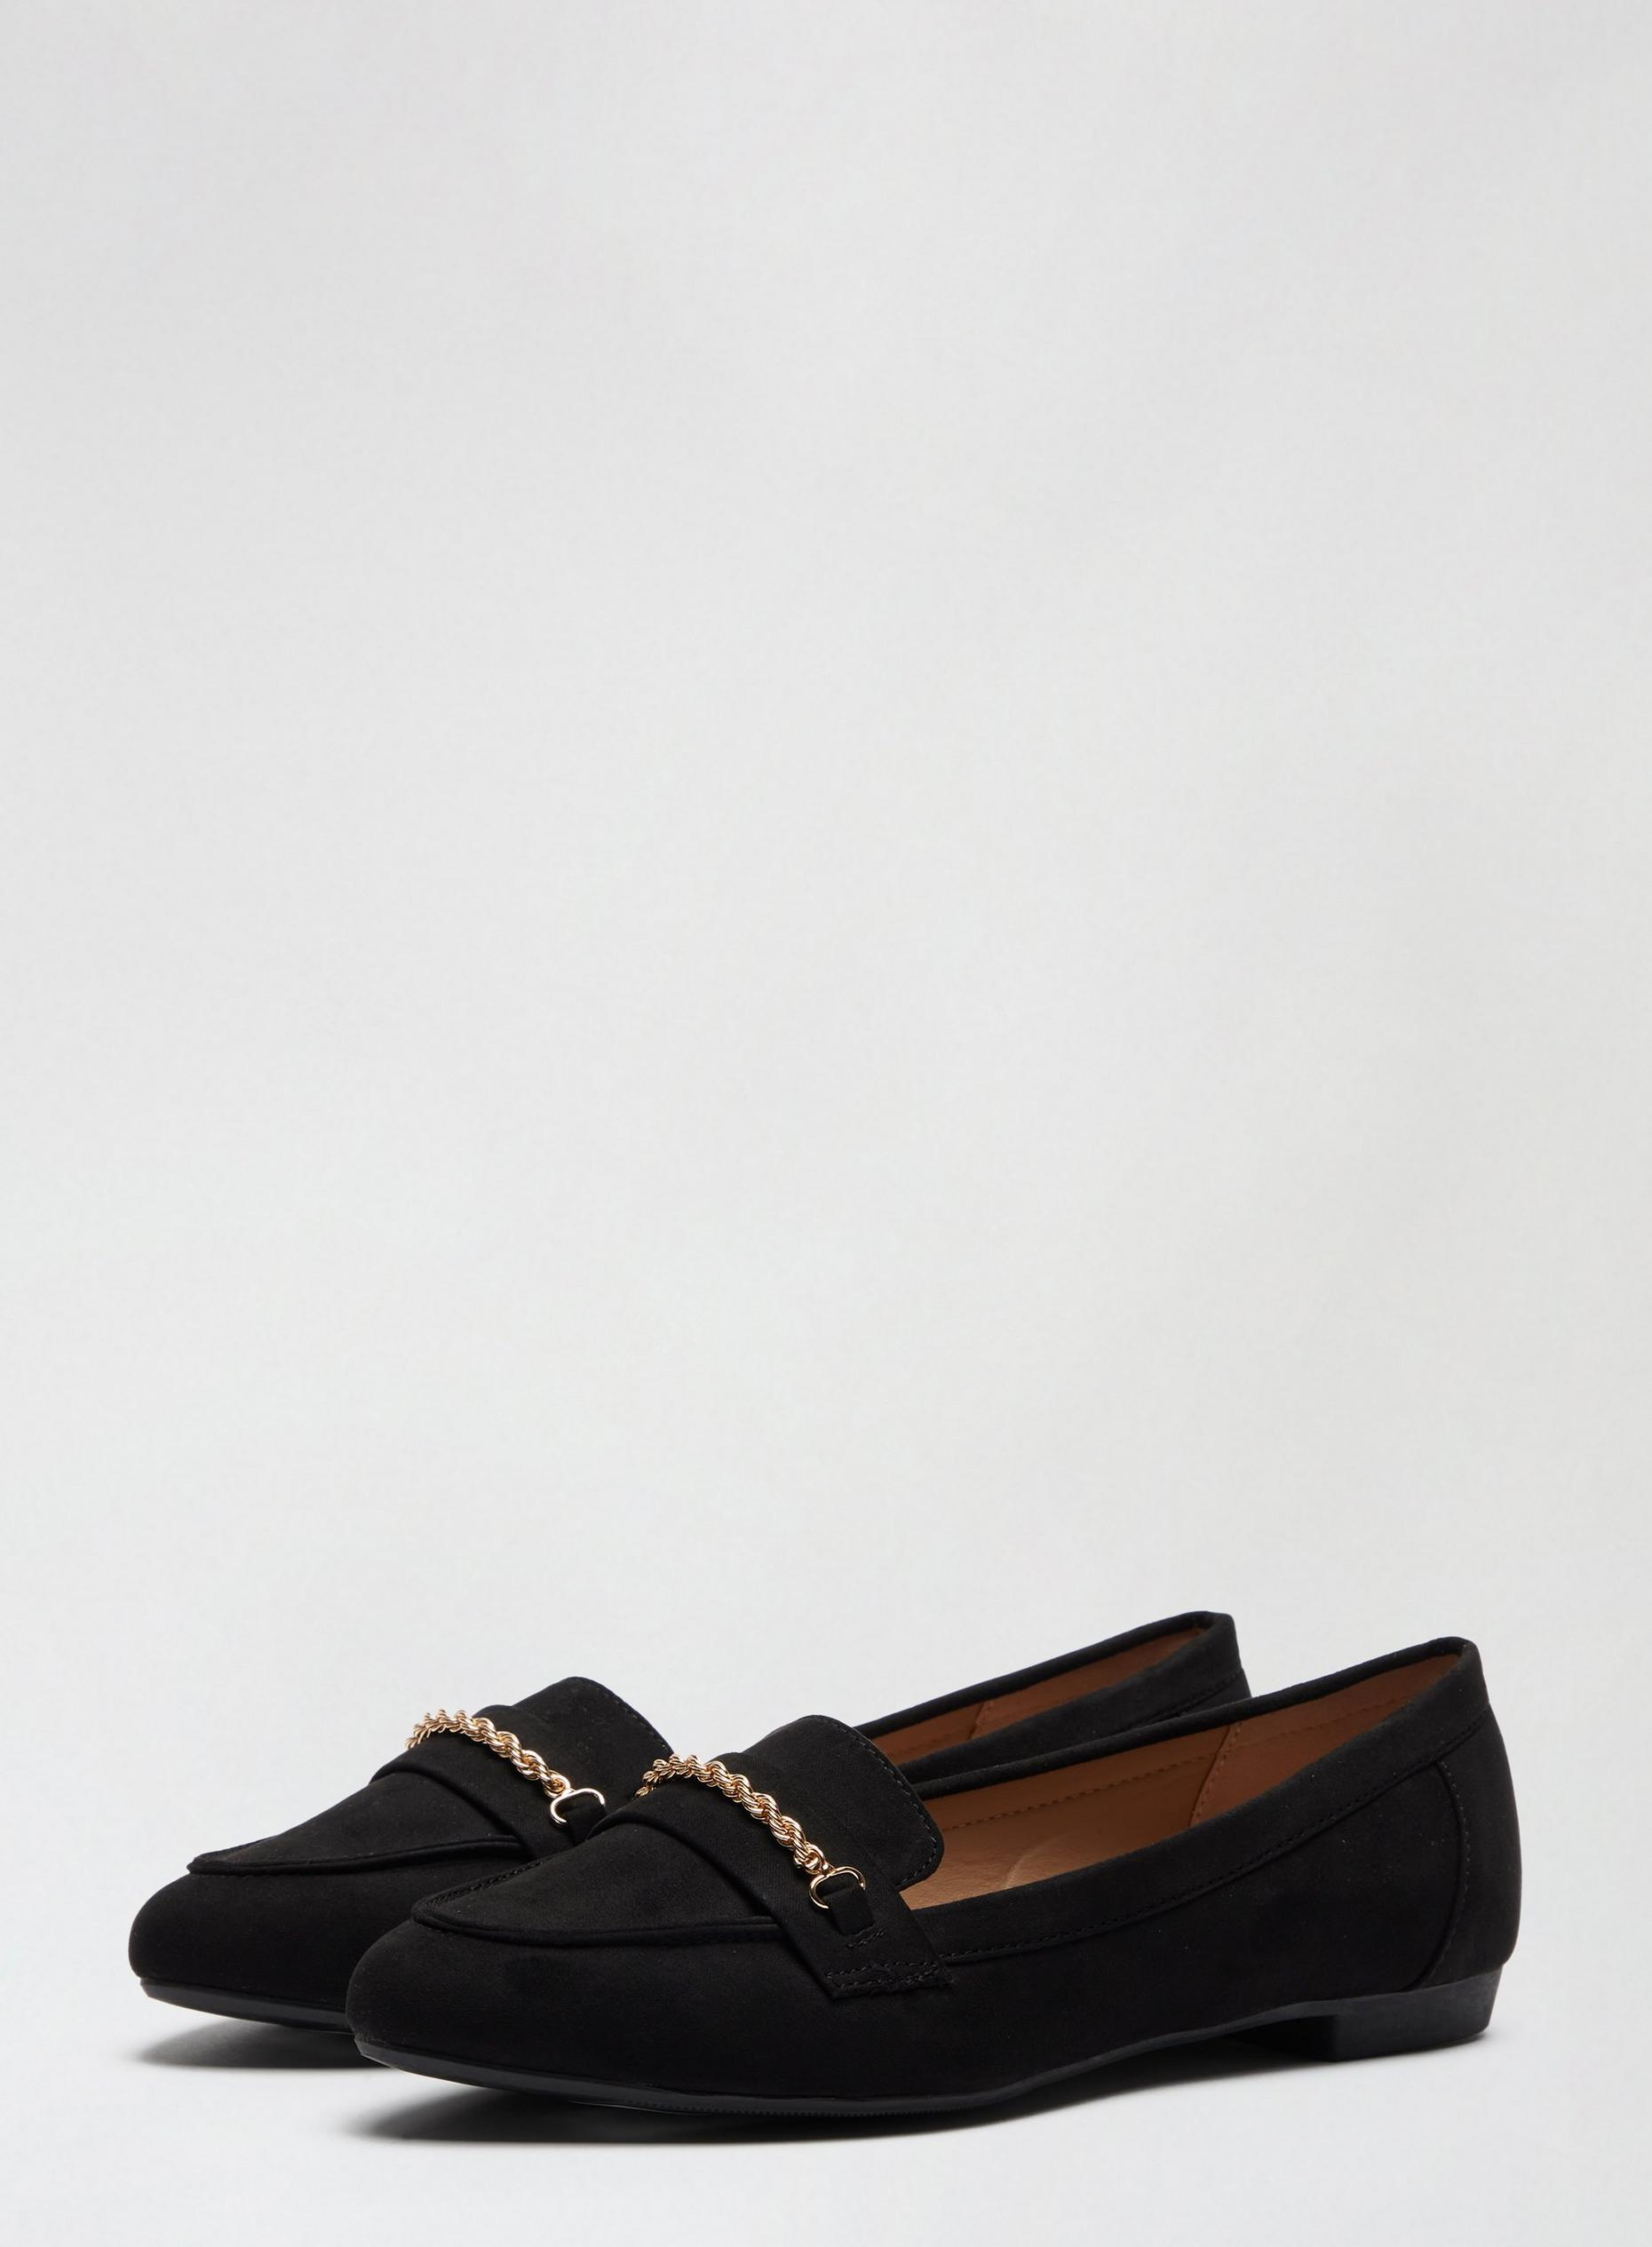 Black Preppy Pumps